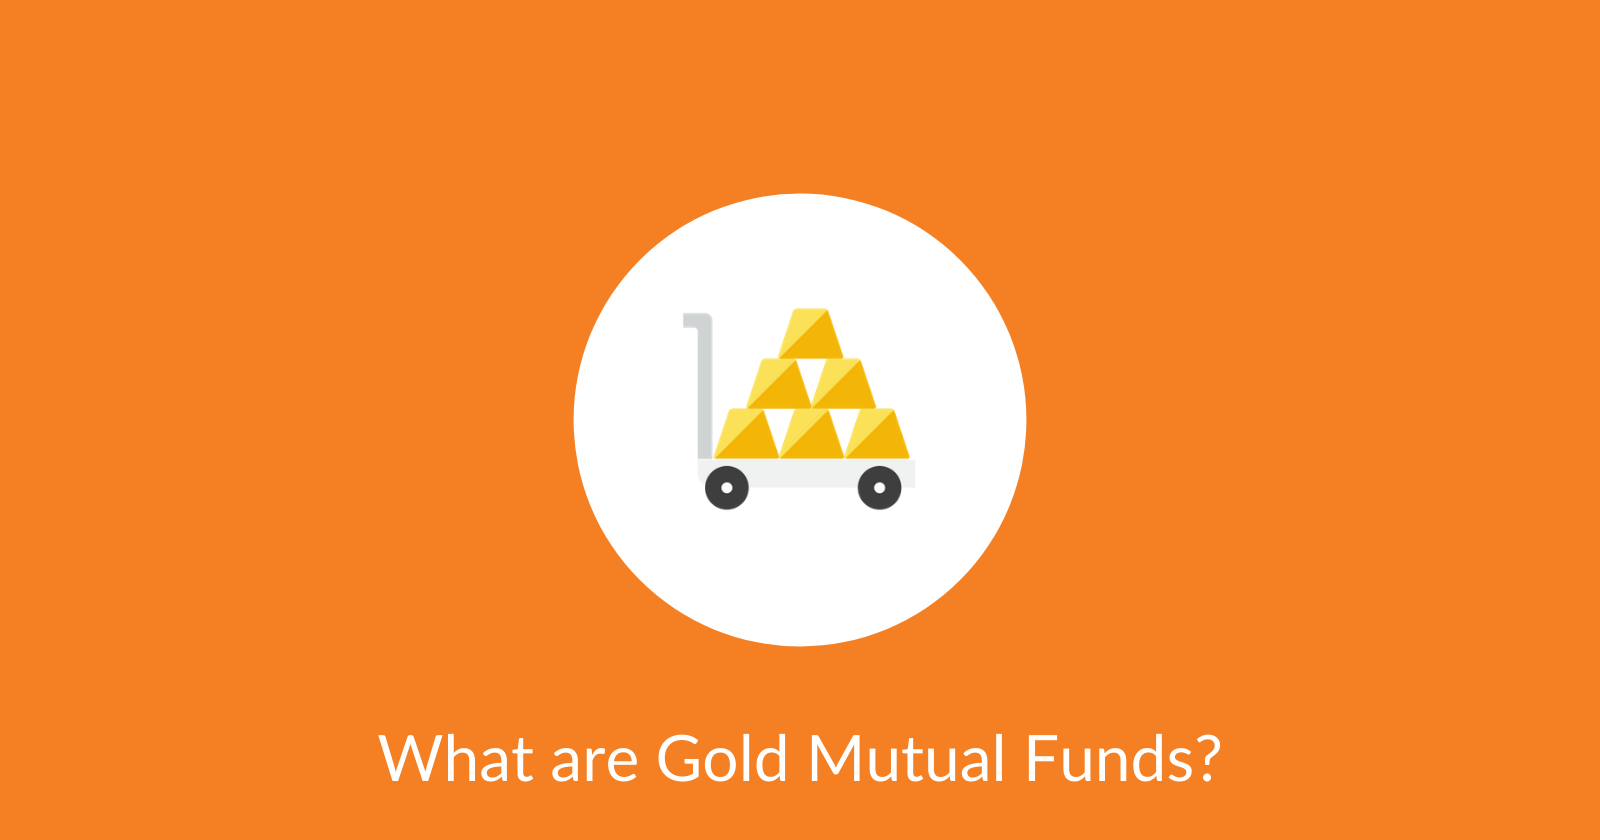 Gold Mutual Funds